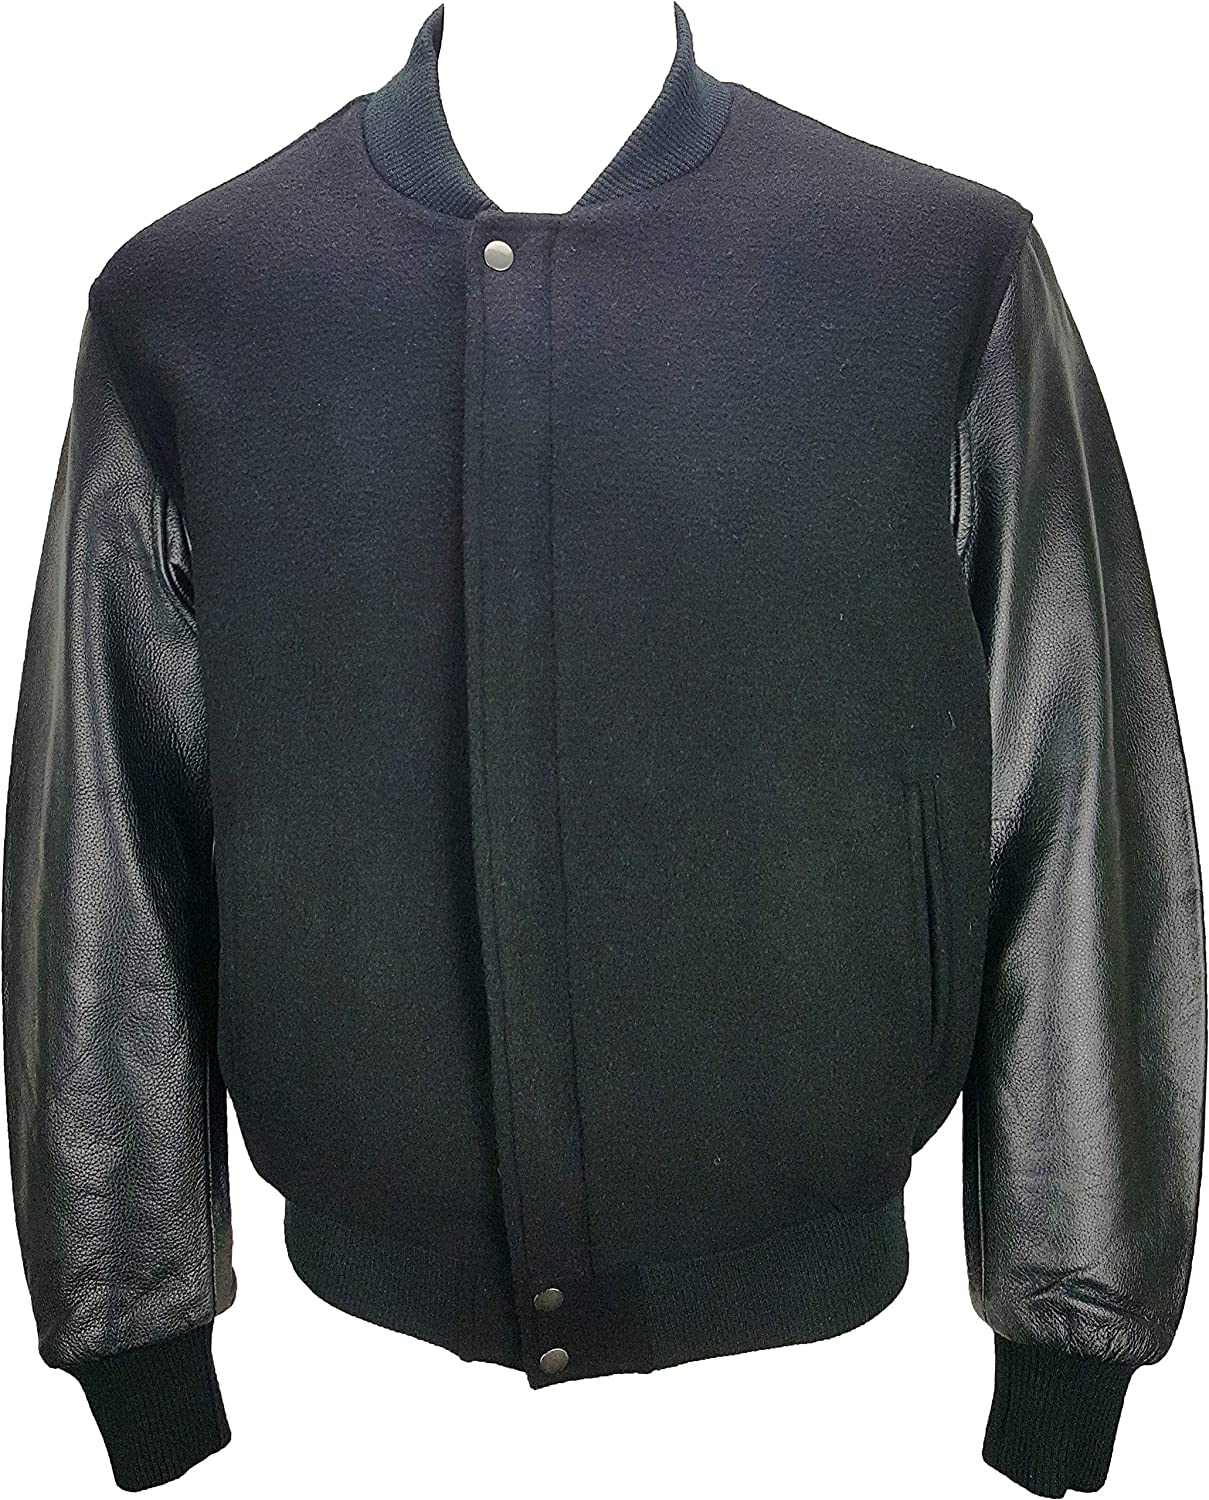 Unicorn Mens Classic Bomber Jacket - Wool and Real Leather - Black #JO